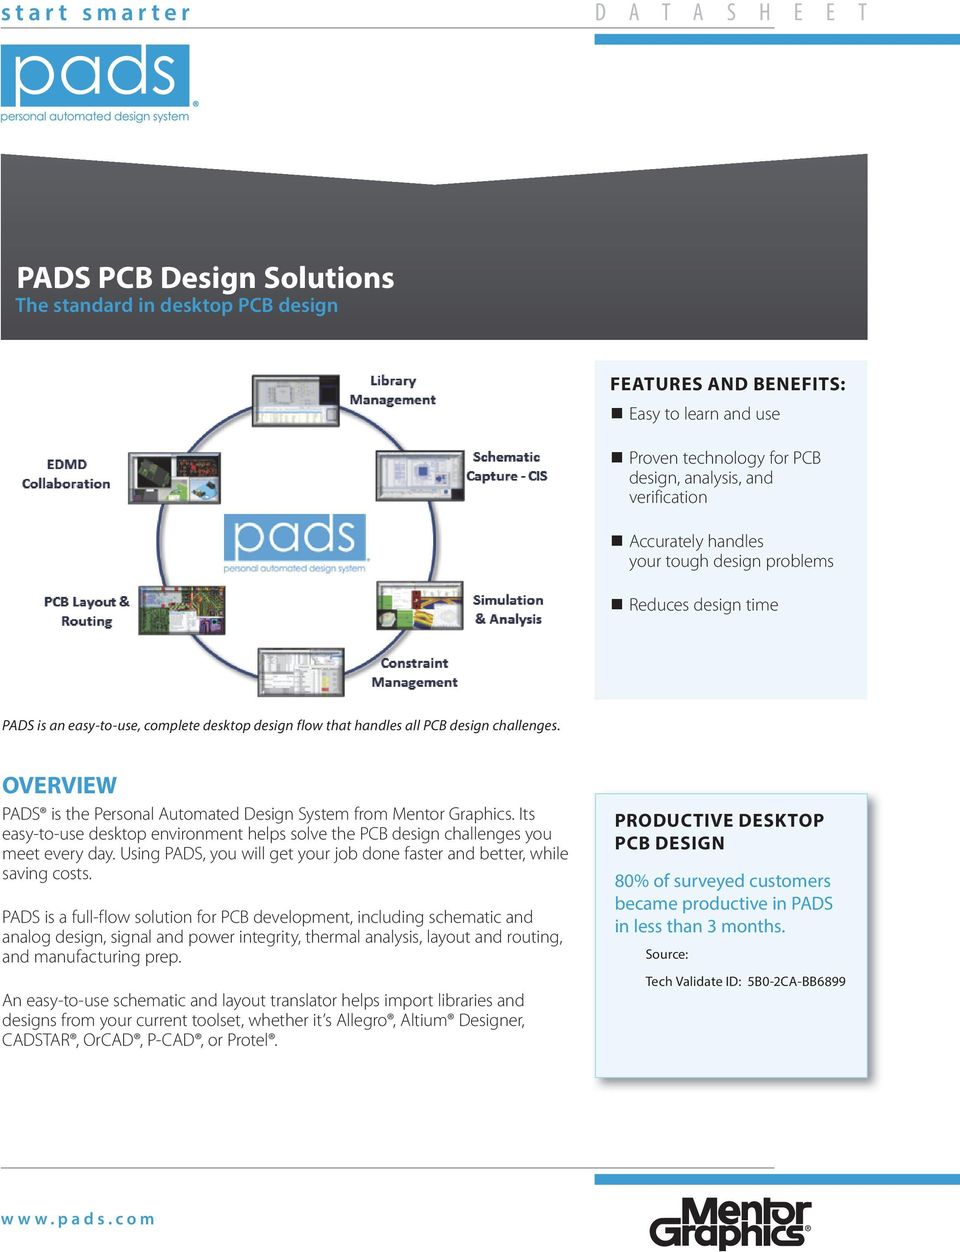 OVERVIEW PADS is the Personal Automated Design System from Mentor Graphics. Its easy-to-use desktop environment helps solve the PCB design challenges you meet every day.